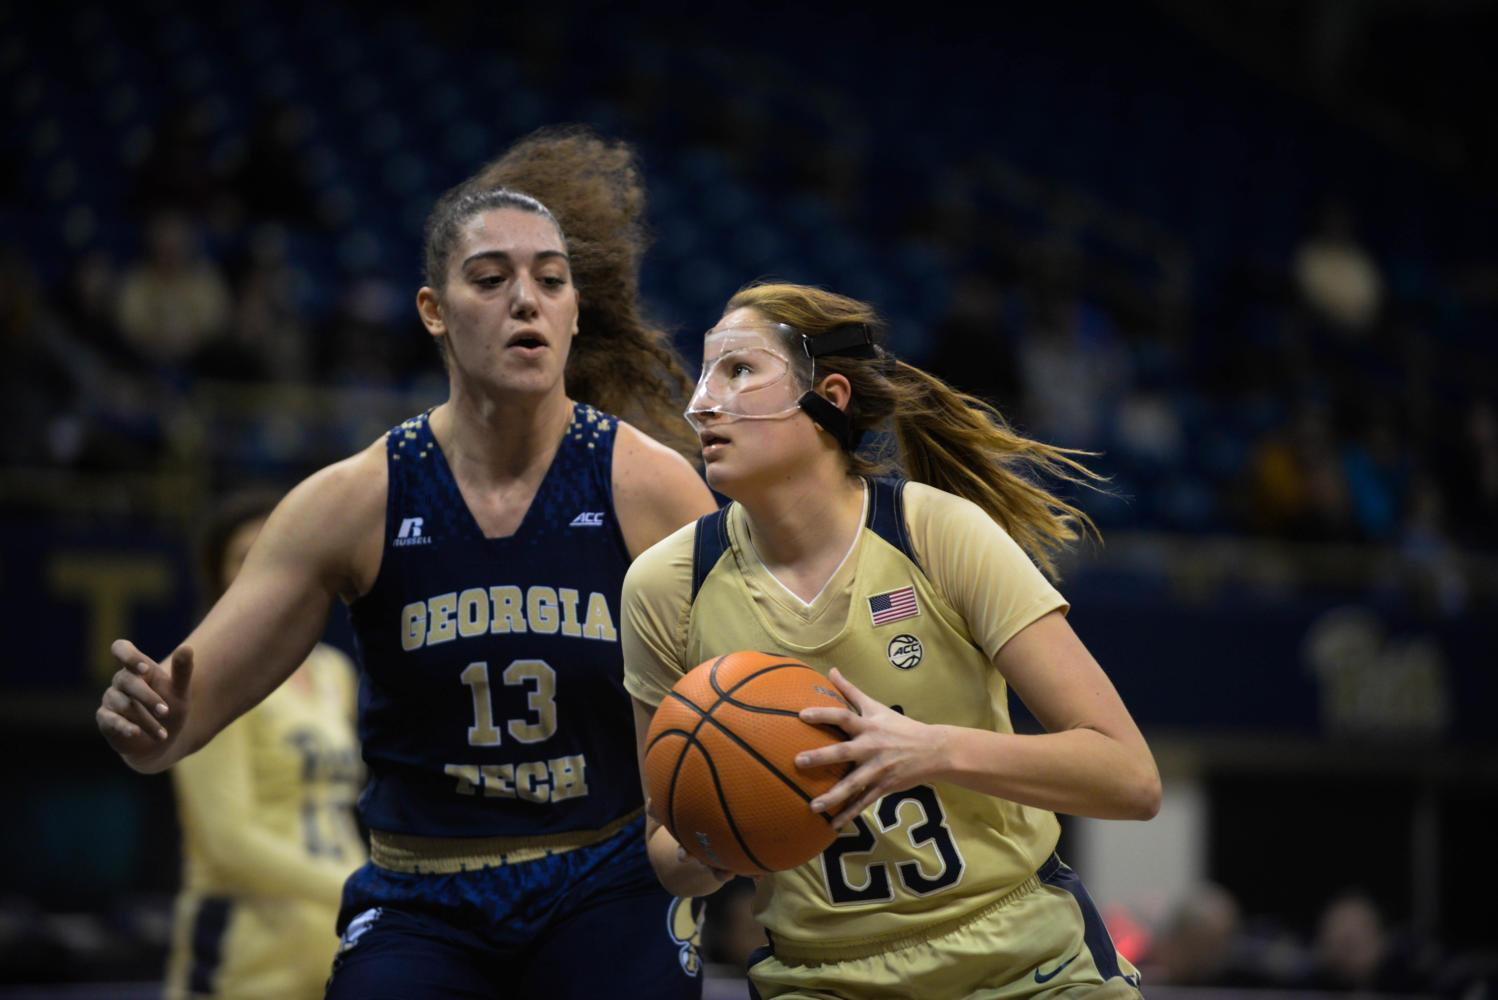 Alayna Gribble, sophomore, scored a career-high 29 points in Pitt's 68-62 first ACC victory of the year.  (Photo by Christian Snyder | Multimedia Editor)